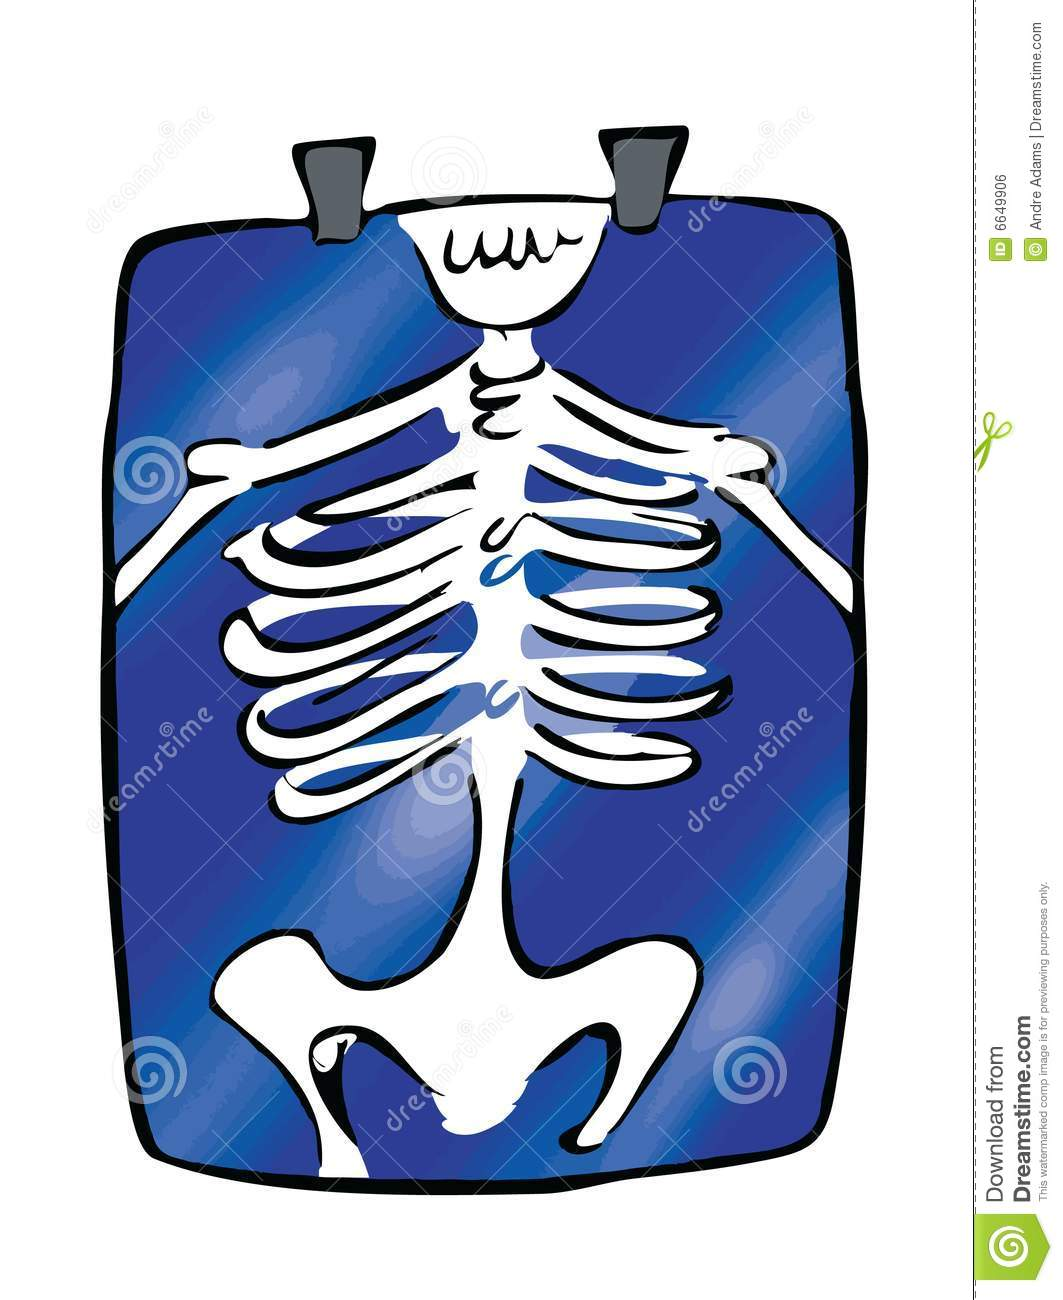 x ray clipart free - photo #20